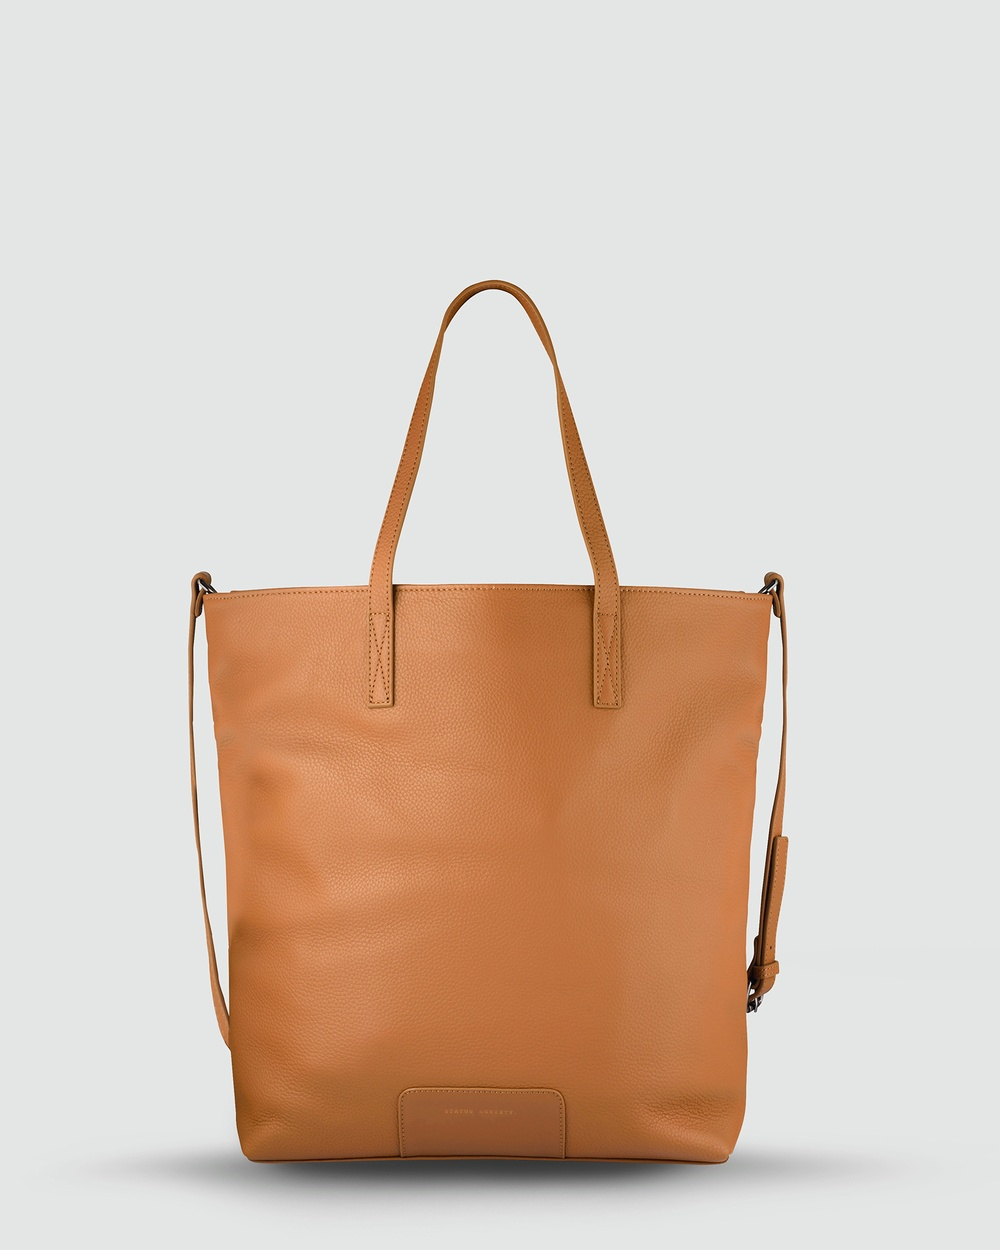 Status Anxiety Fire on the Vine Tote Satchels Tan Leather bags Australia